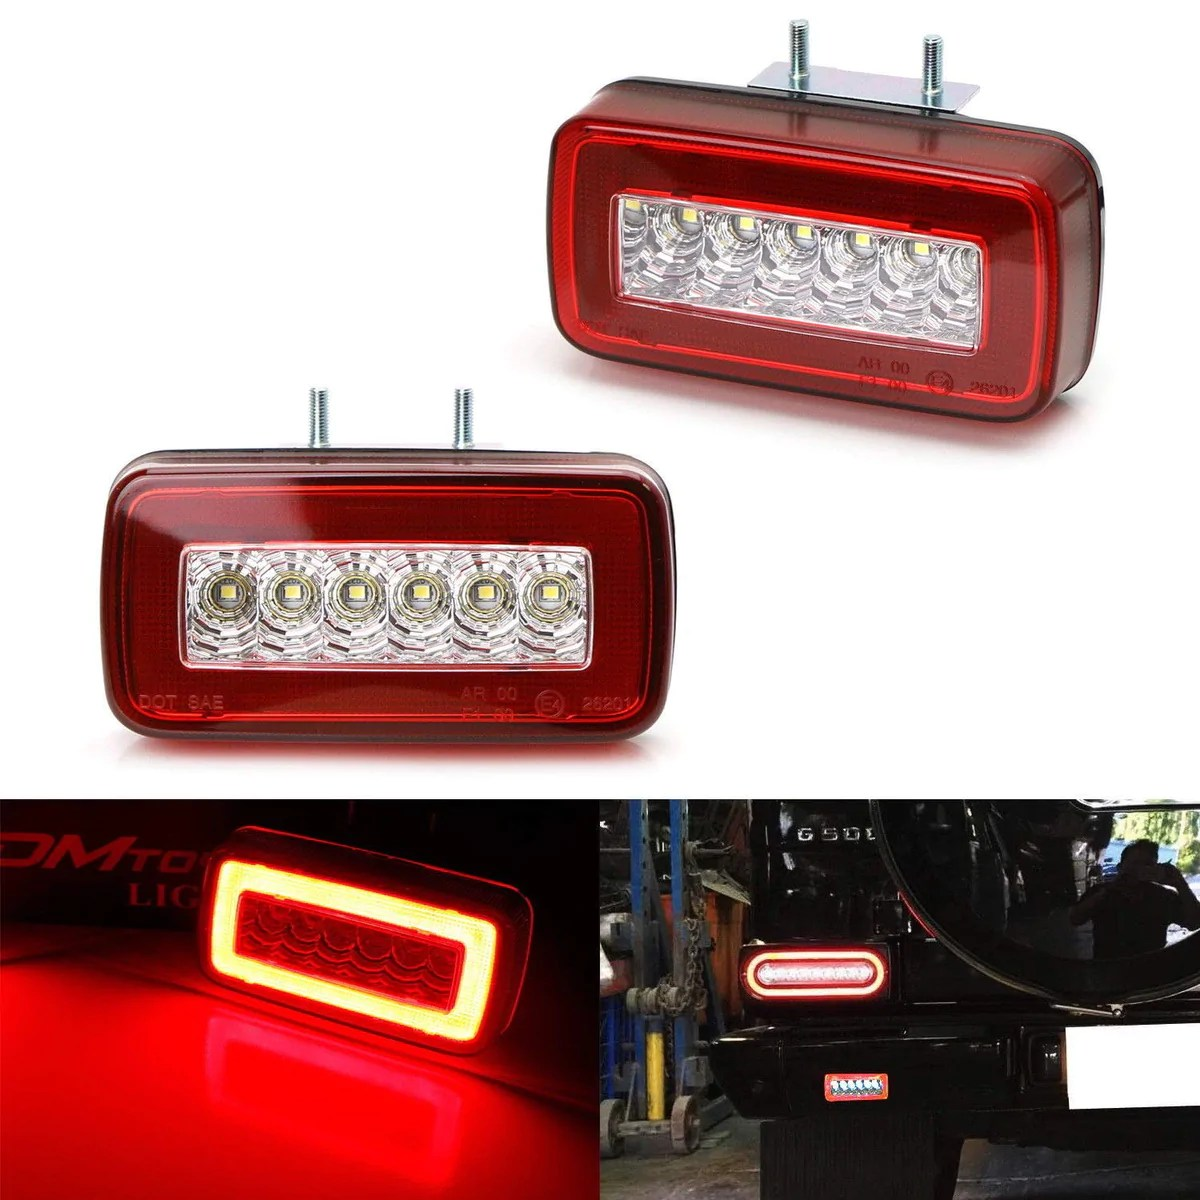 red or smoked lens 3 in 1 led rear fog backup light kit for 1986 2018 mercedes benz w463 g class g500 g550 g55 g63 amg functions as rear fog driving brake  [ 1200 x 1200 Pixel ]